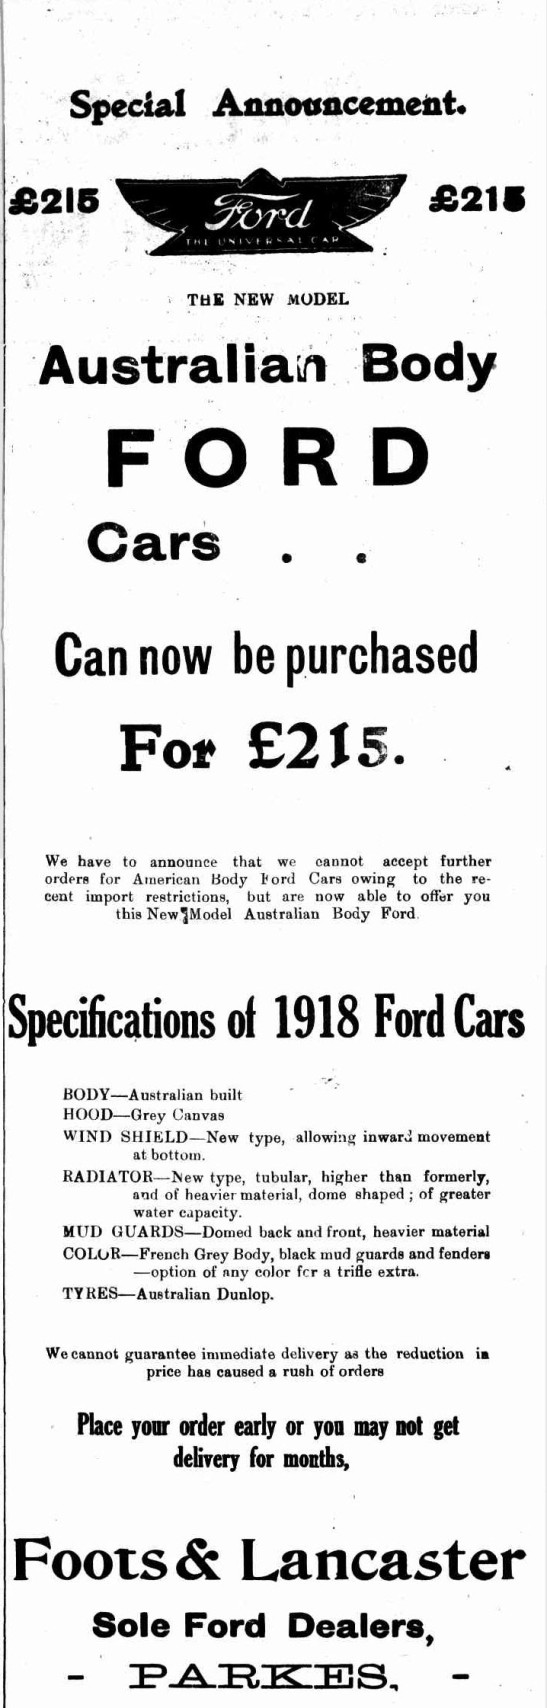 It's amazing how different times are 100 years ago. This advertisement for Foots & Lancaster, explains to customers that orders for imported American body Ford cars cannot occur due to government restrictions. Instead customers are encouraged to purchase Australian made Fords! Source: The Western Champion Thursday 13th December 1917 page 12